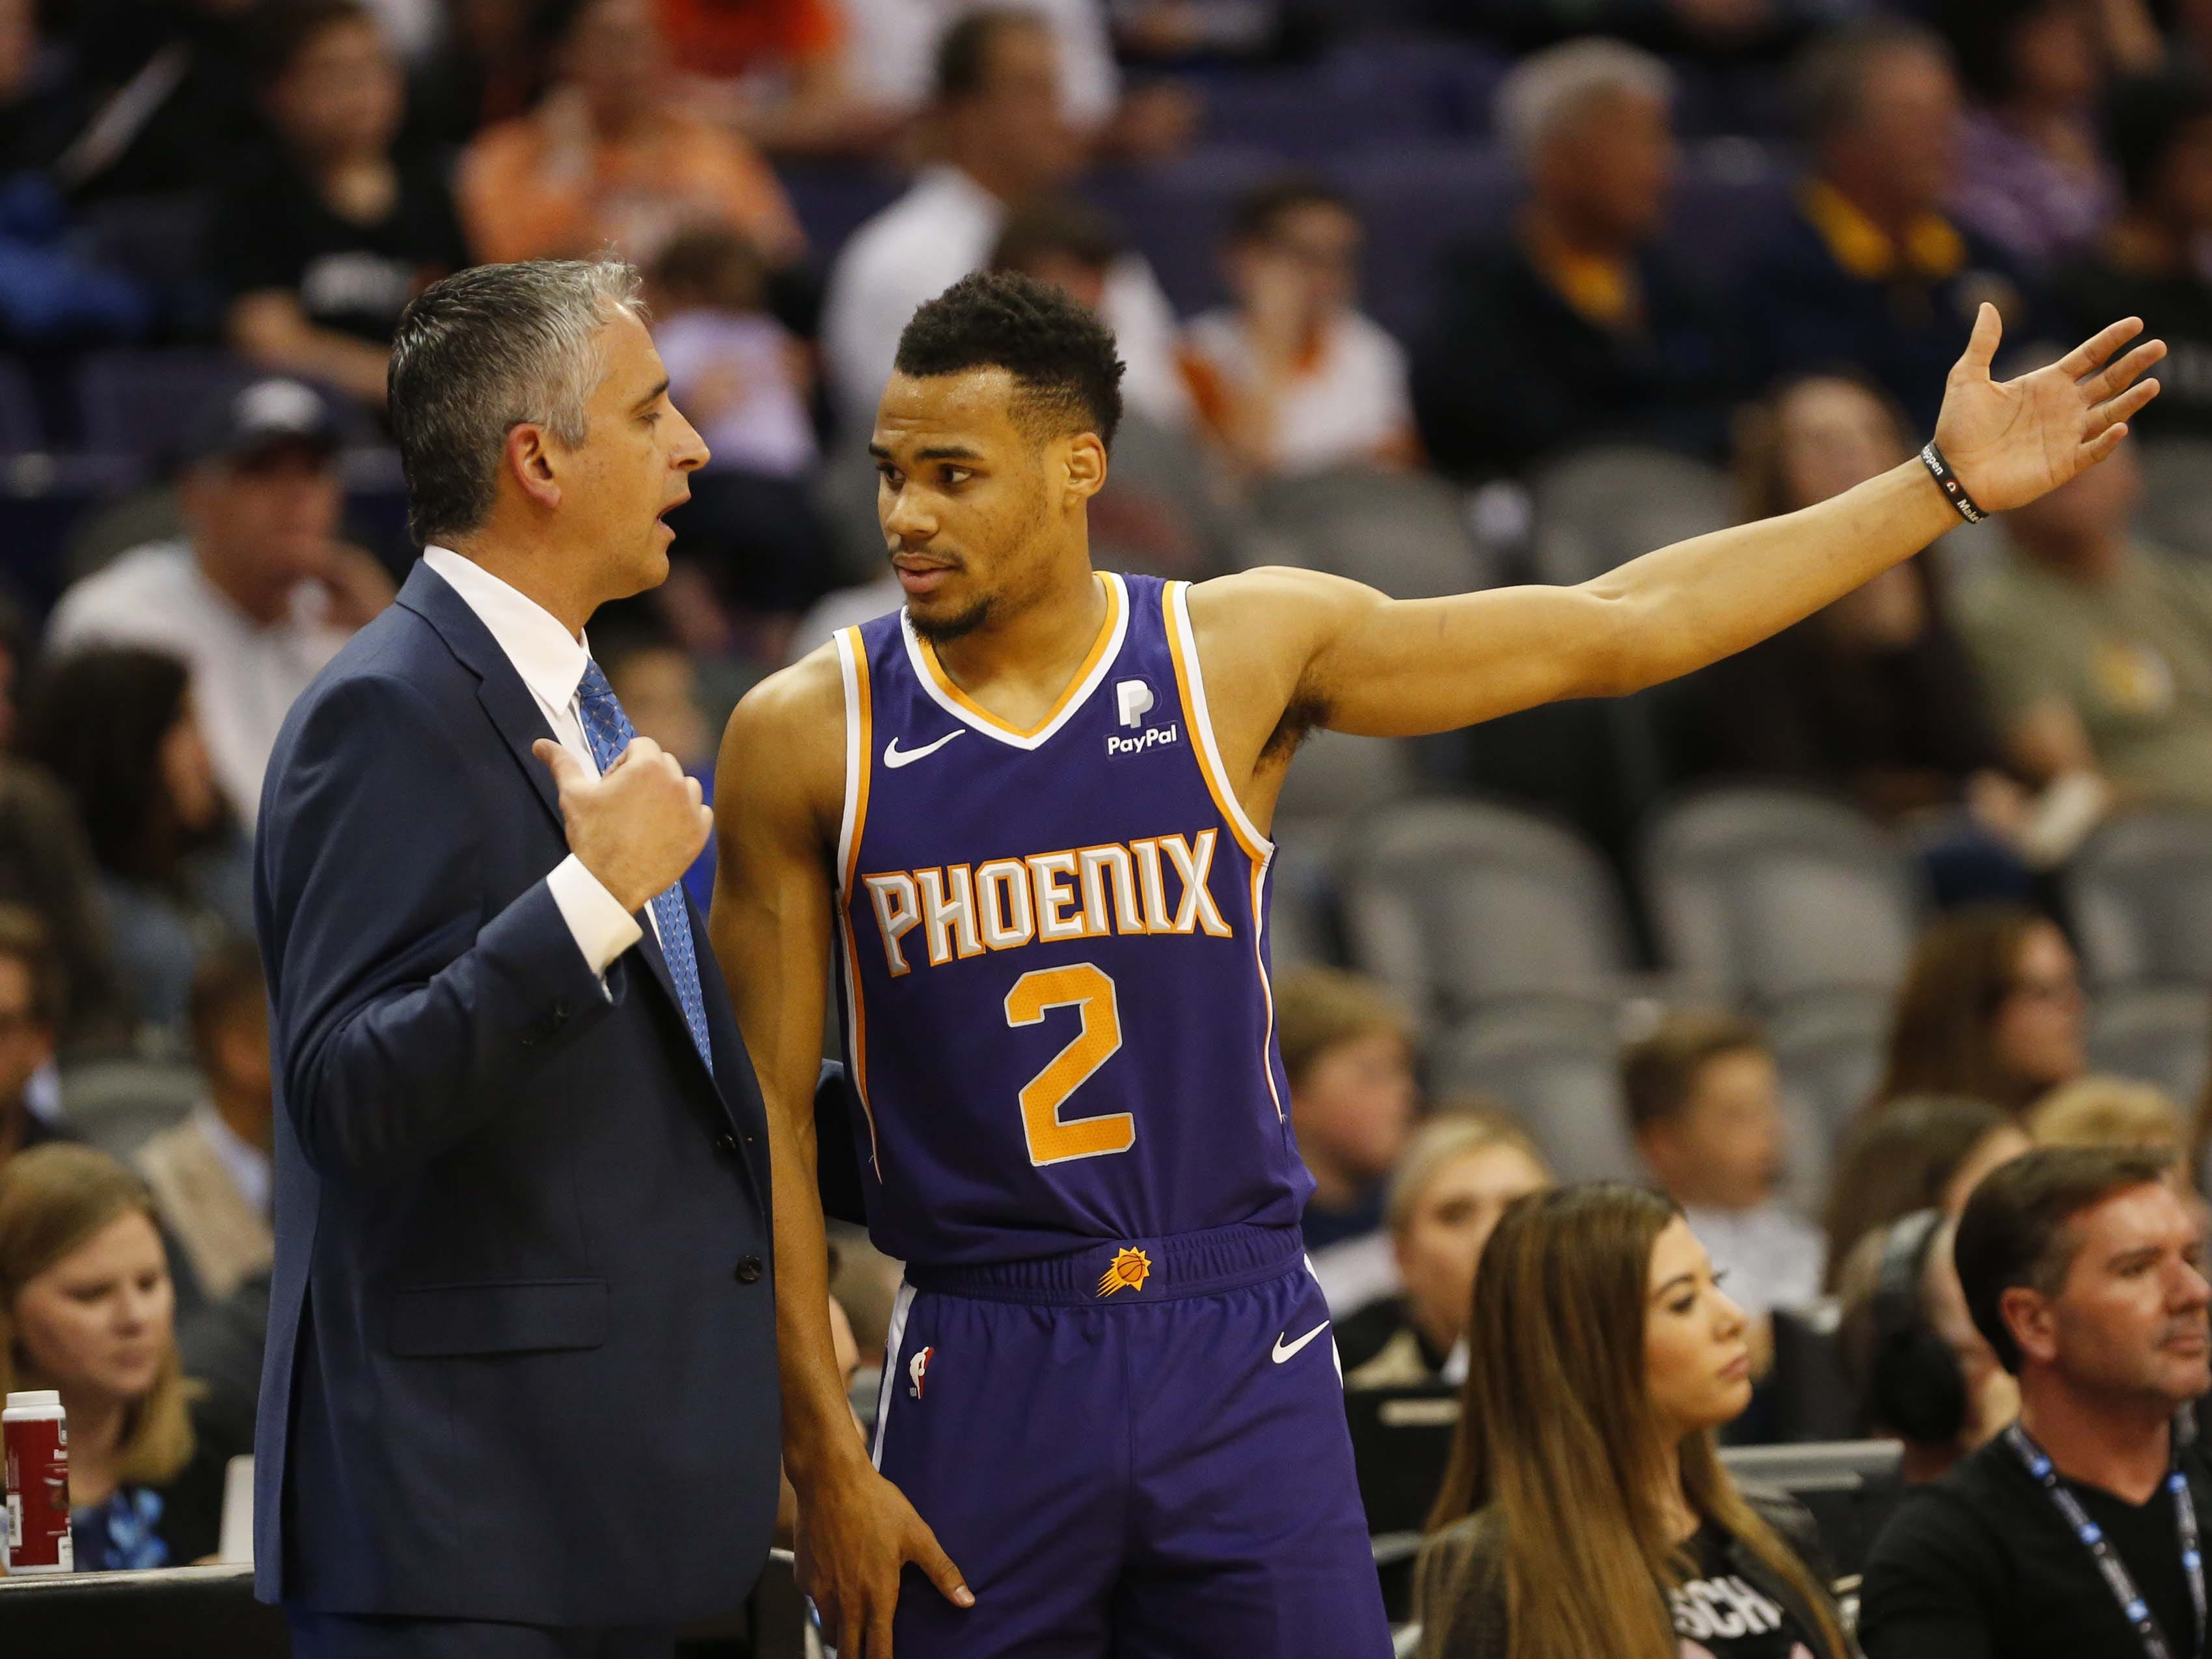 Phoenix Suns head coach Igor Kokoskov talks with Phoenix Suns guard Elie Okobo (2) during the second quarter against the Charlotte Hornets in Phoenix January 6, 2019.